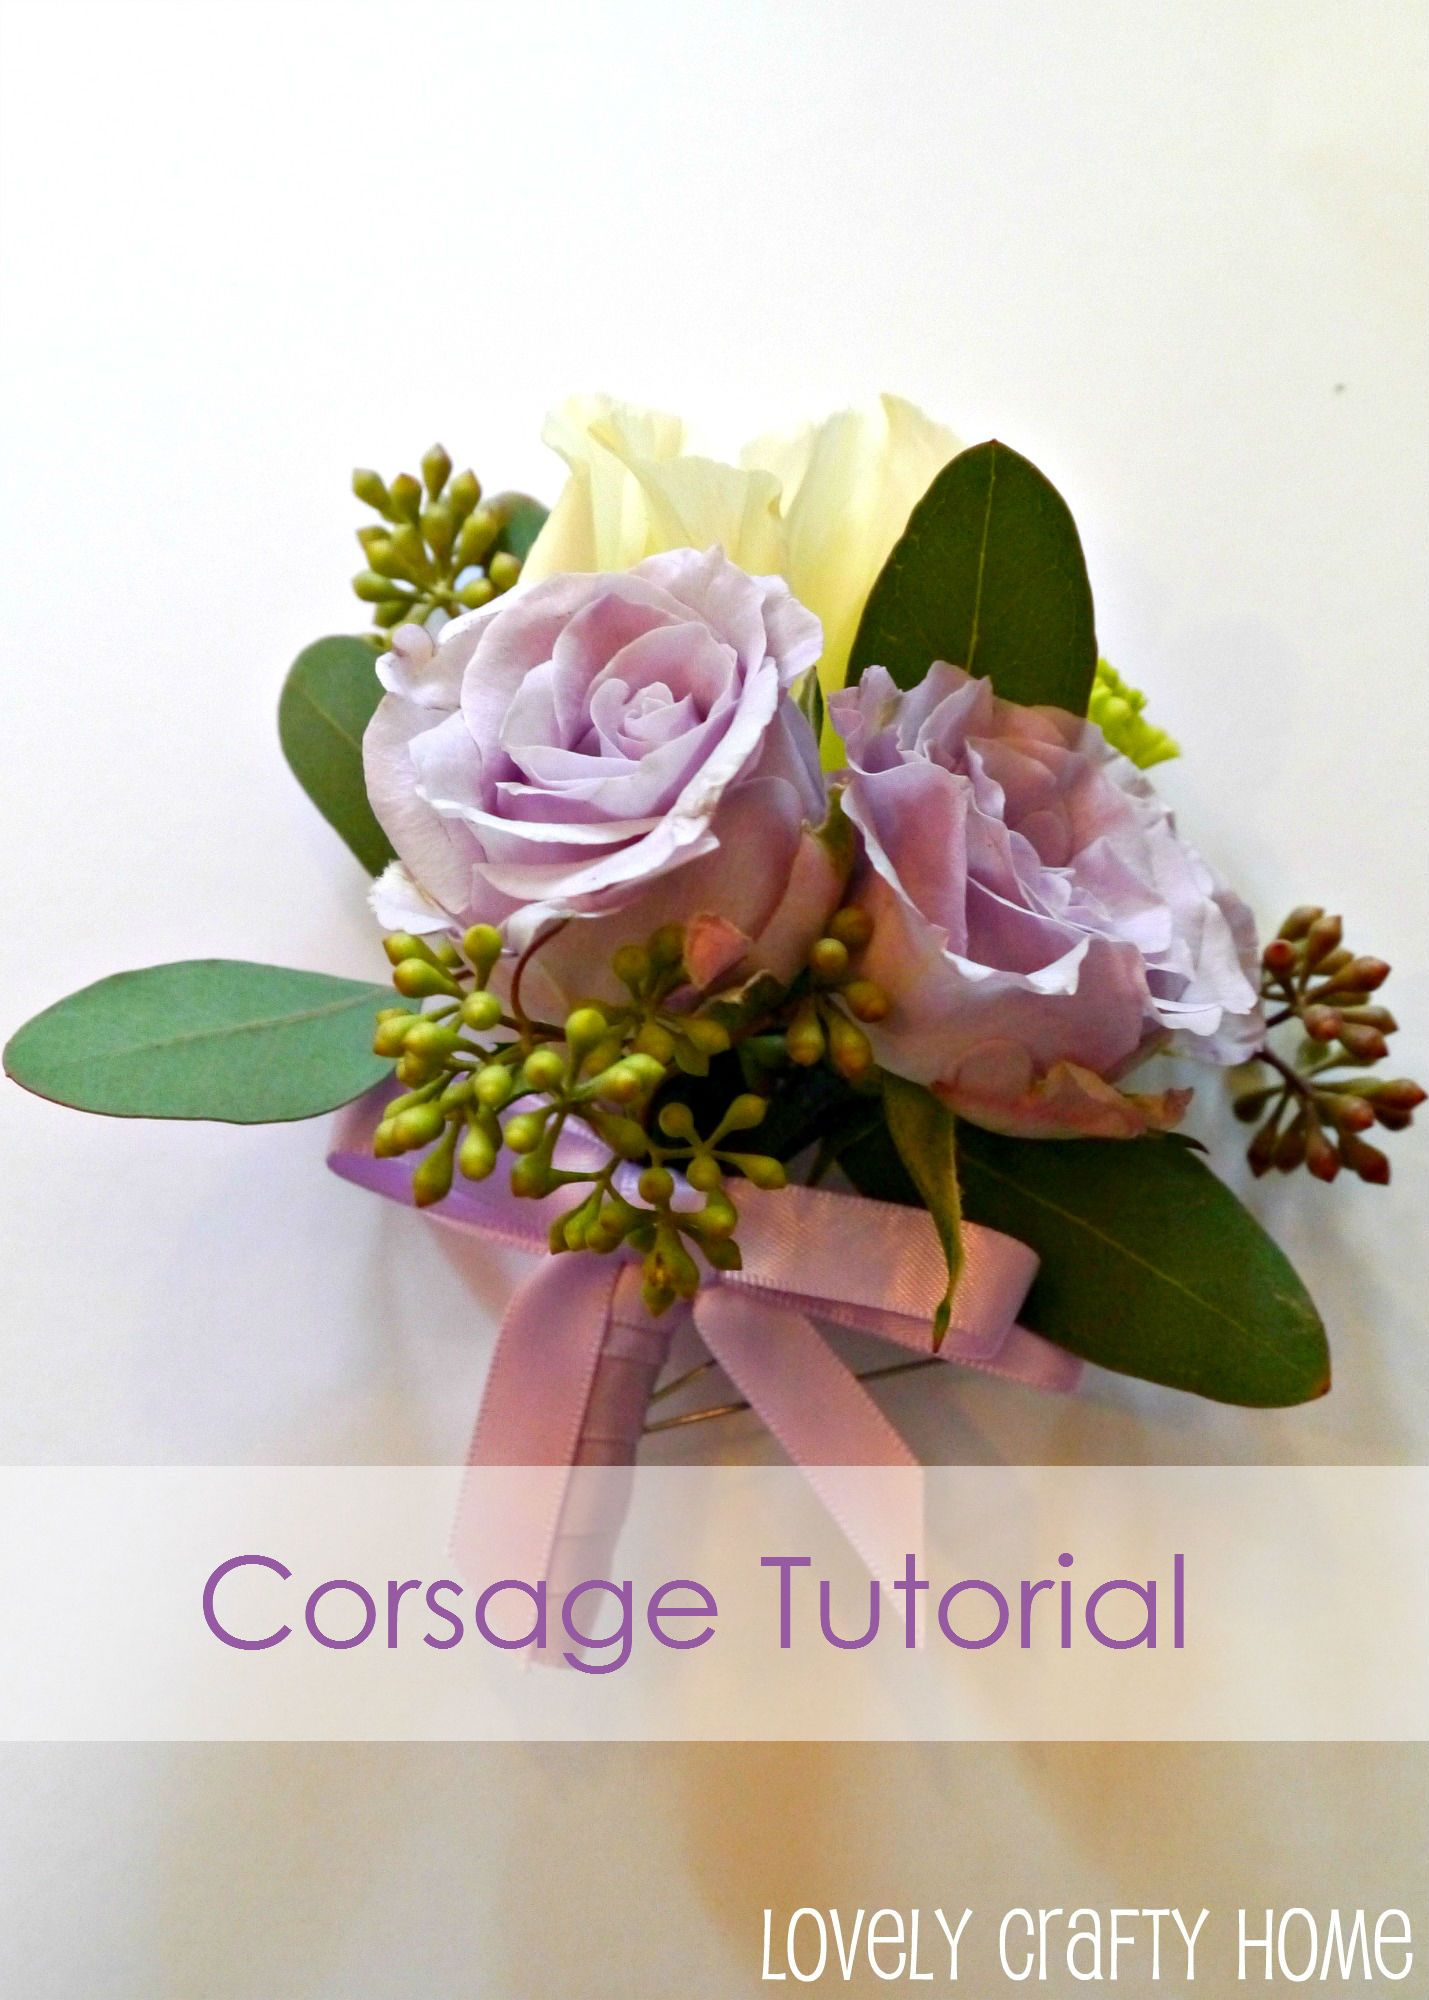 Pin By Trinh Huynh On Wedding Inspirations Diy Corsage Diy Corsage Tutorial Diy Wedding Flowers